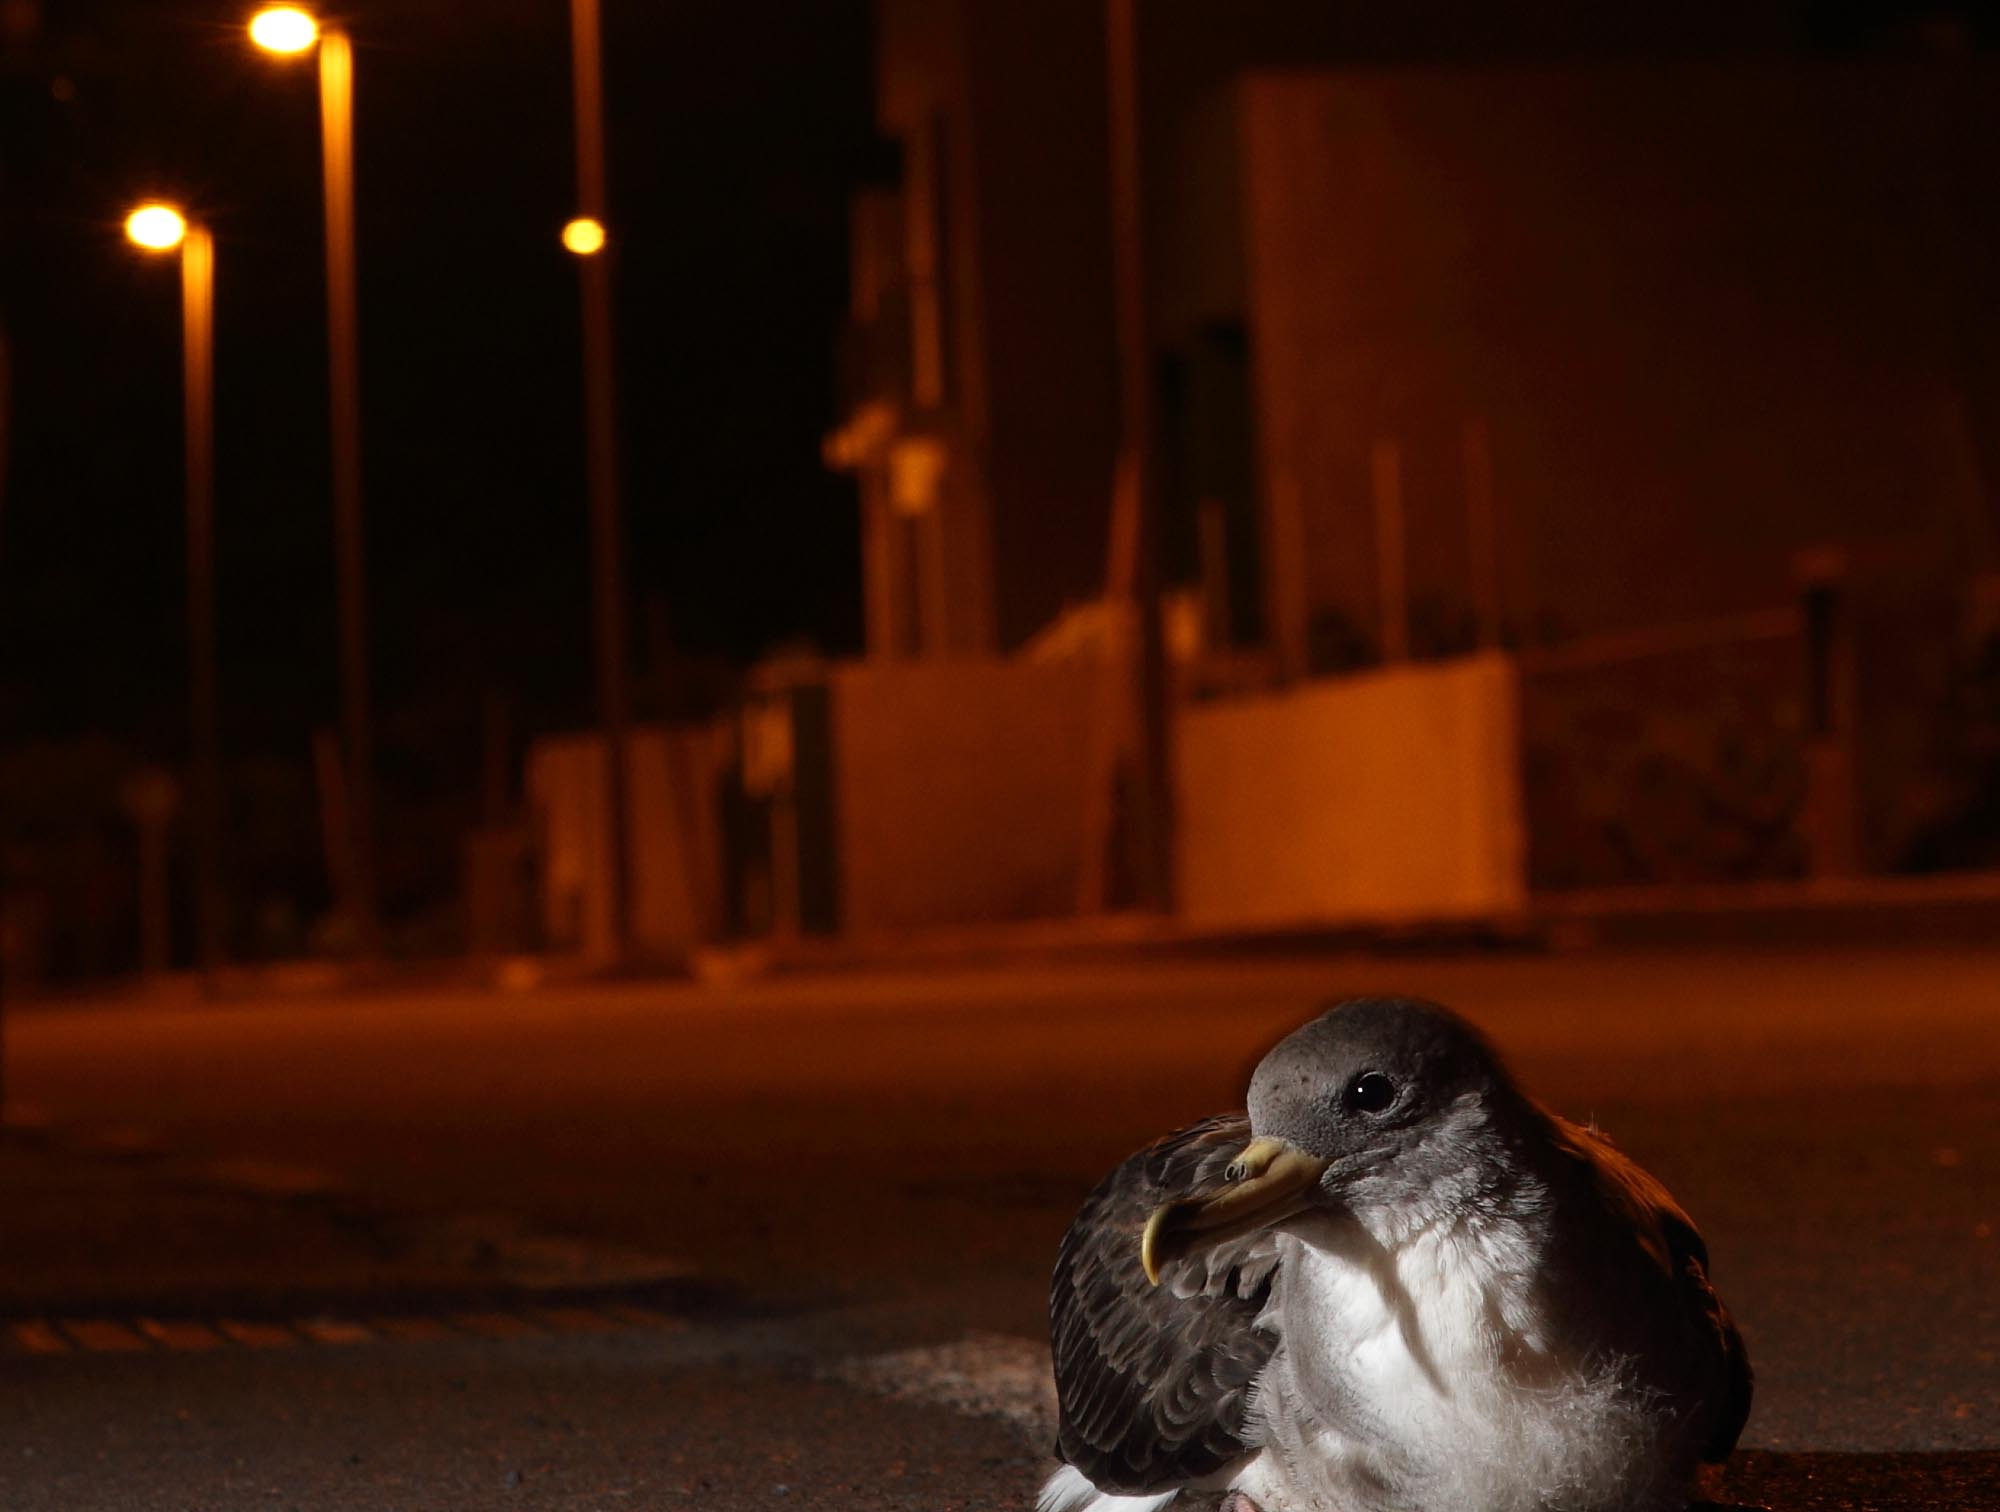 Light pollution can be problematic for animals like the Cory's shearwater.